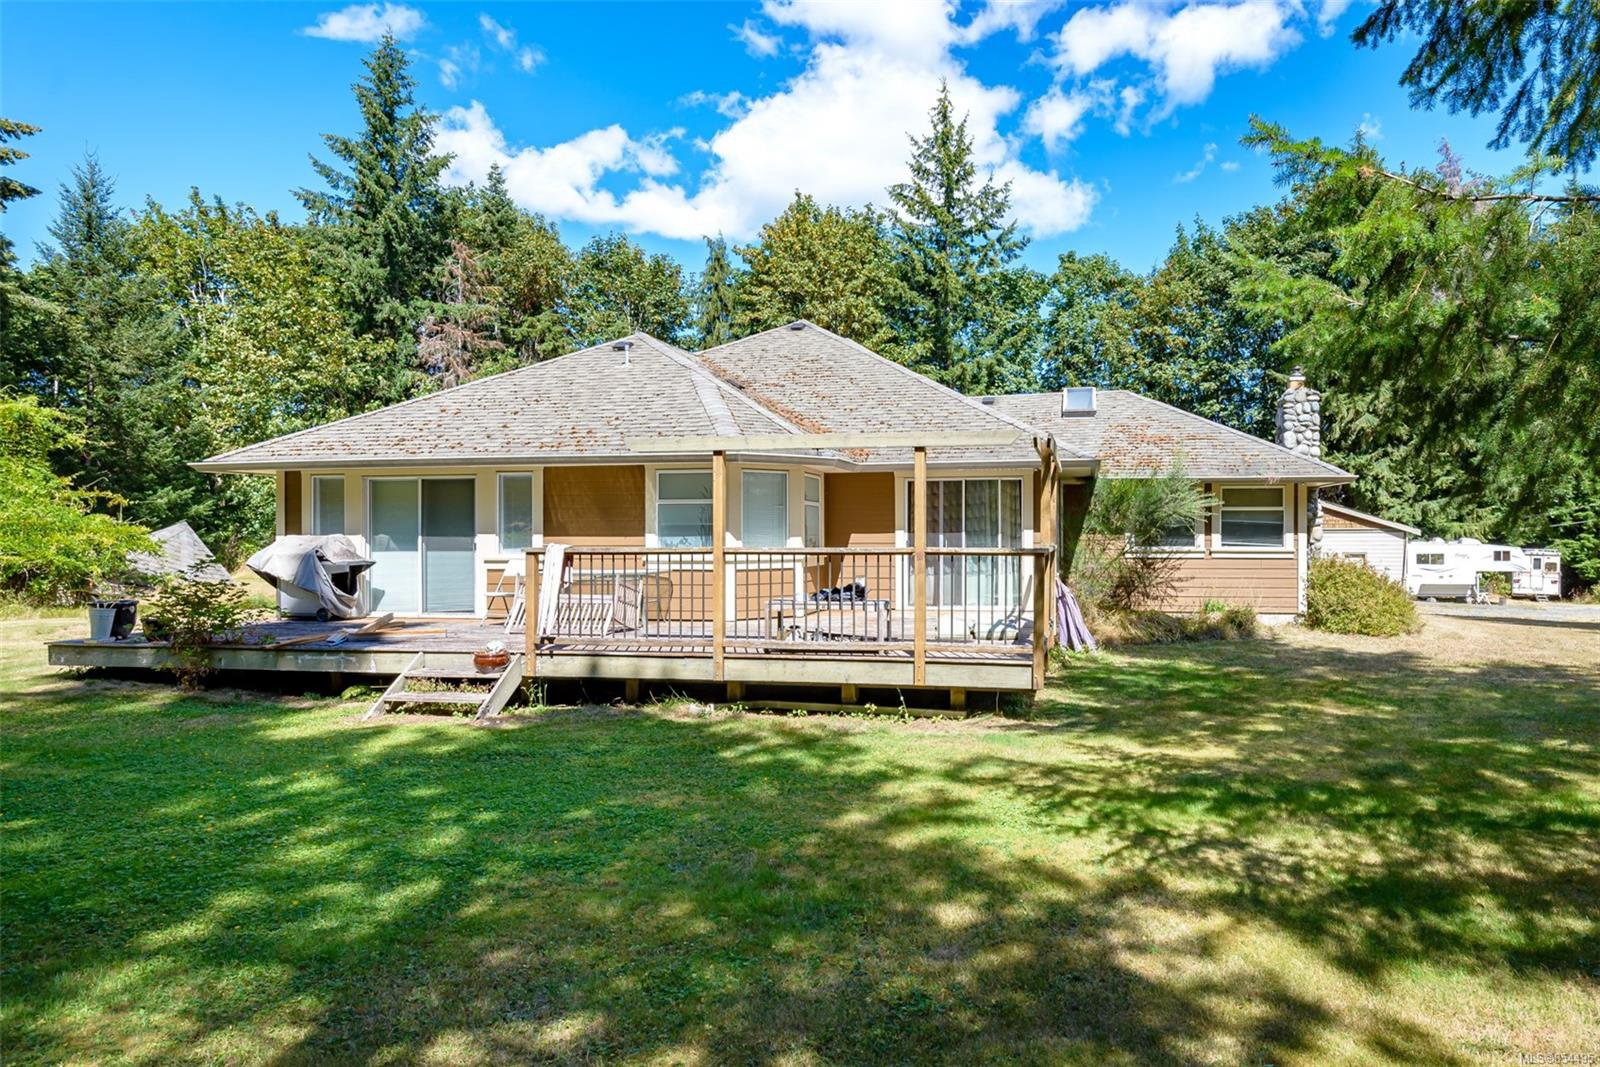 Main Photo: 367 Hatton Rd in : CV Courtenay South Single Family Detached for sale (Comox Valley)  : MLS®# 854495